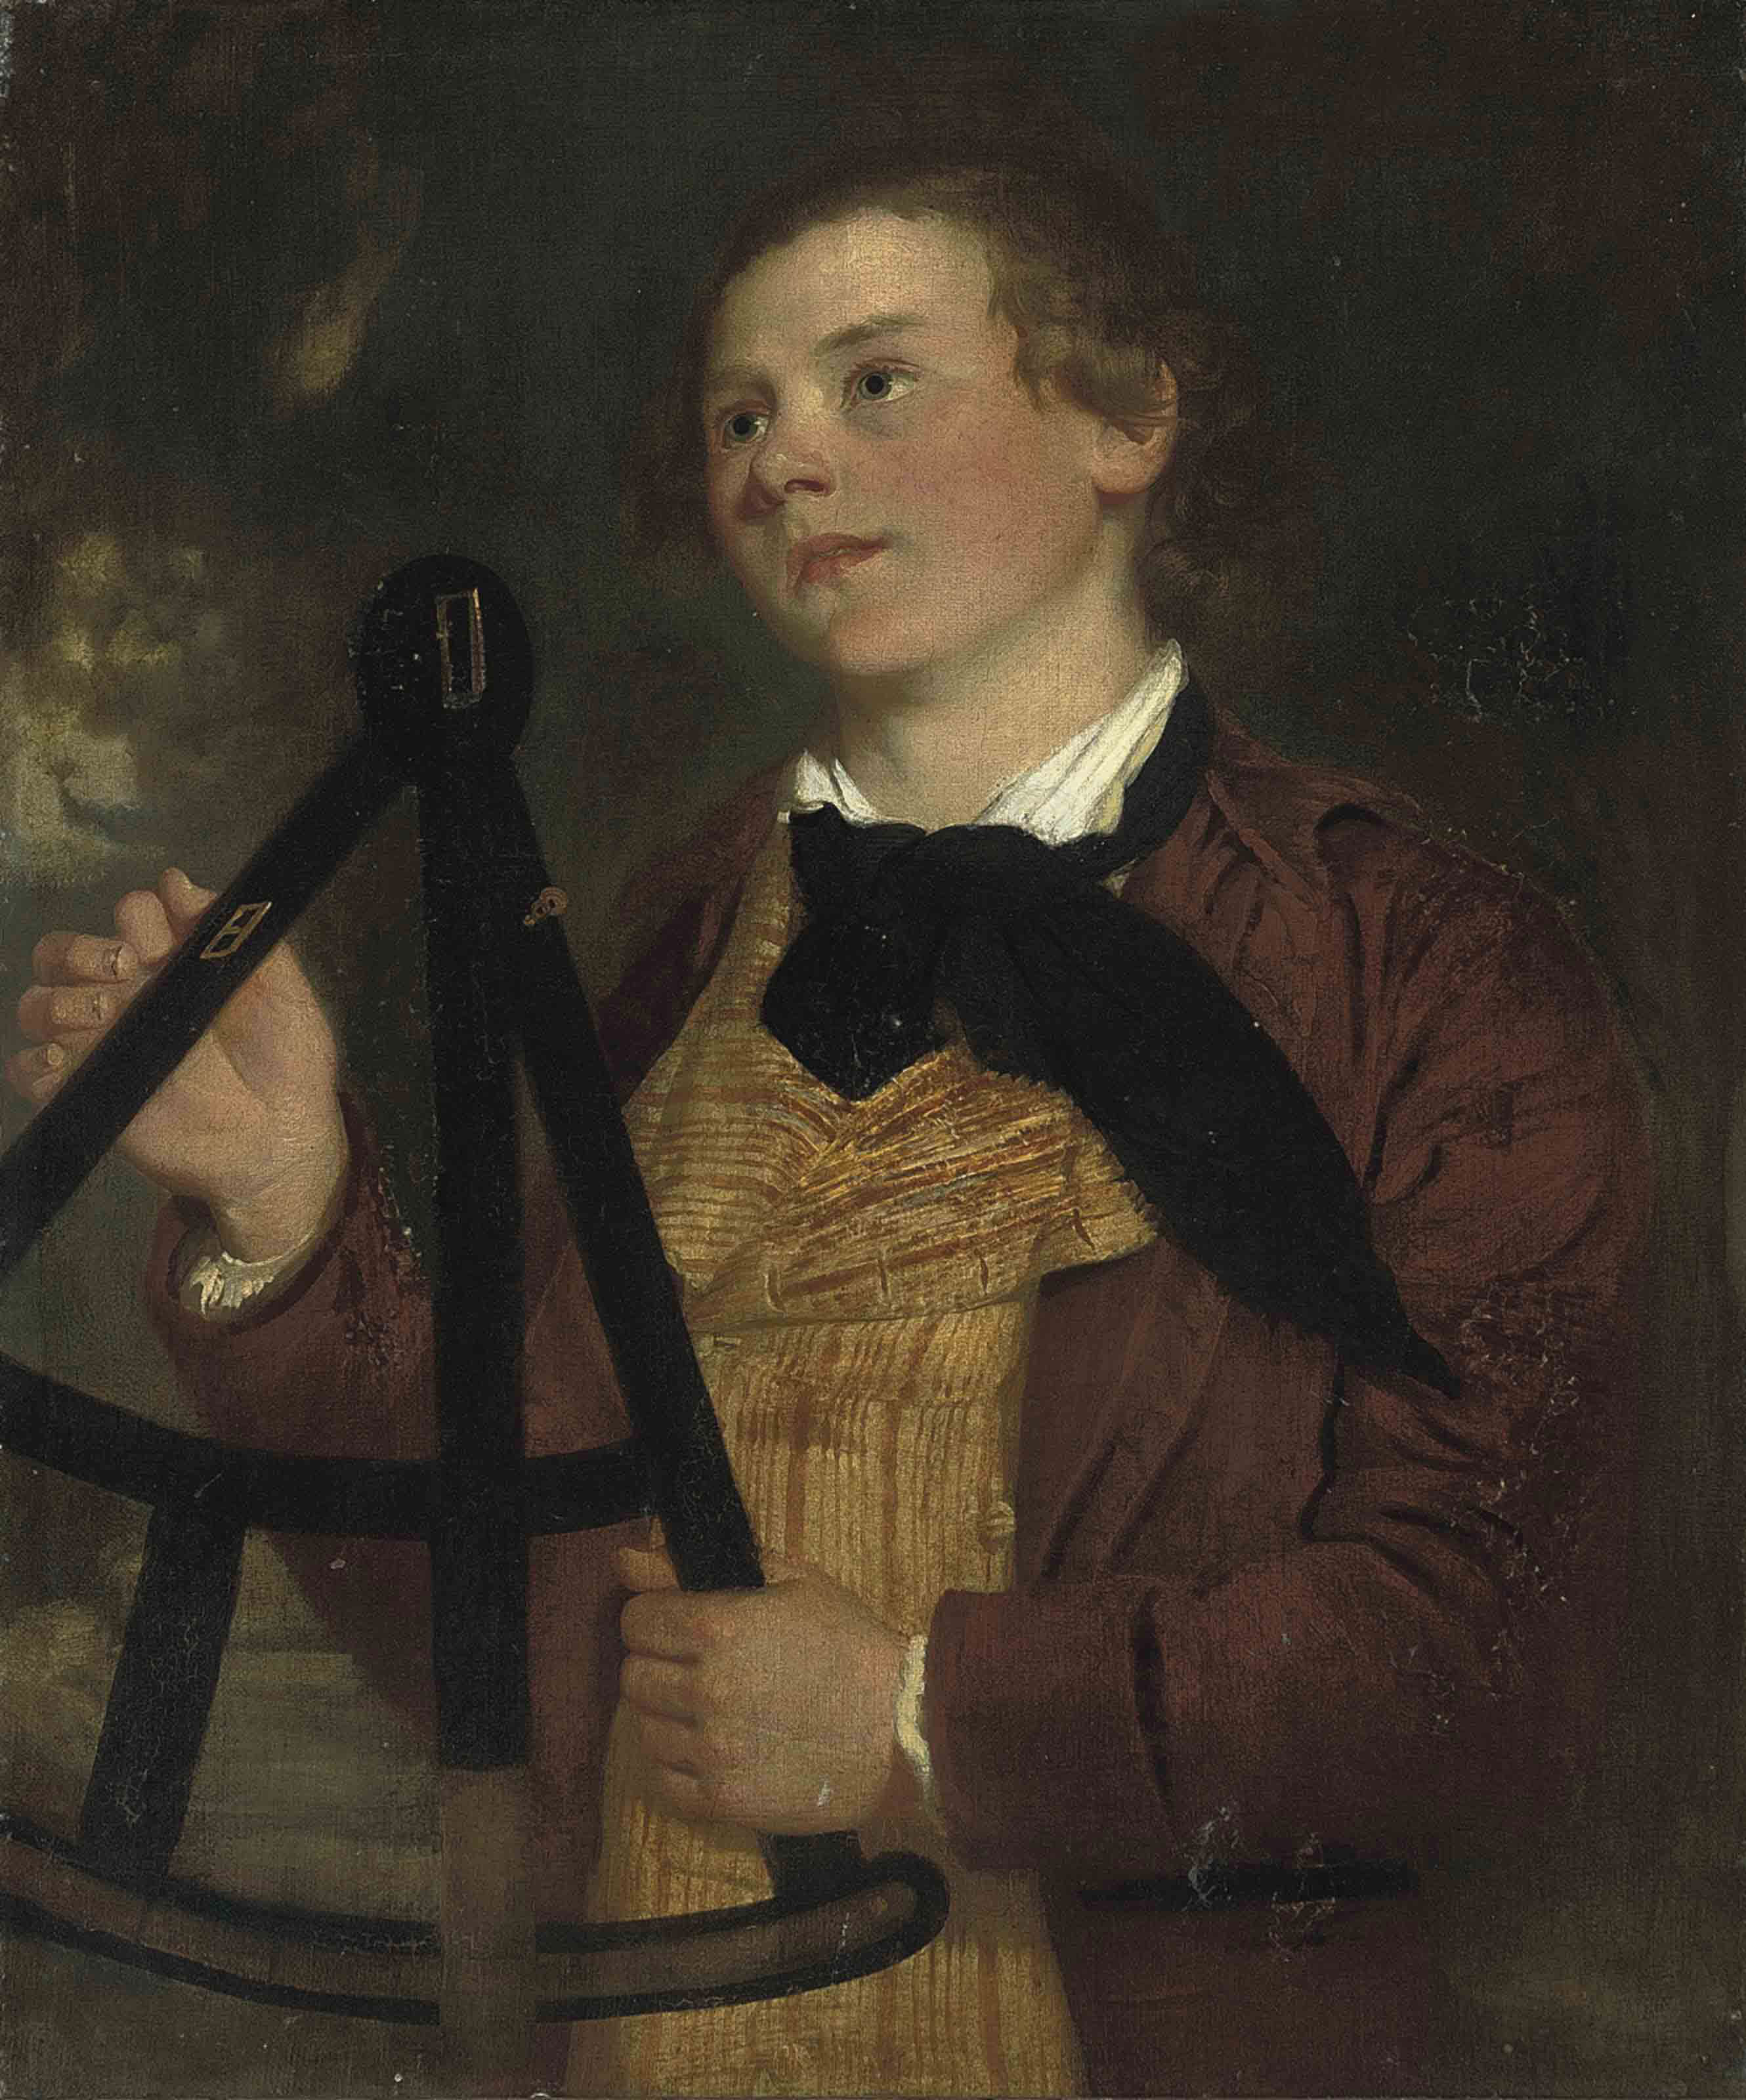 Portait of a gentleman, traditionally identified as John Adey Repton, F.S.A. (1775-1860), half-length, in red coat and yellow waistcoat with a black cravat, holding a surveyors theodolite